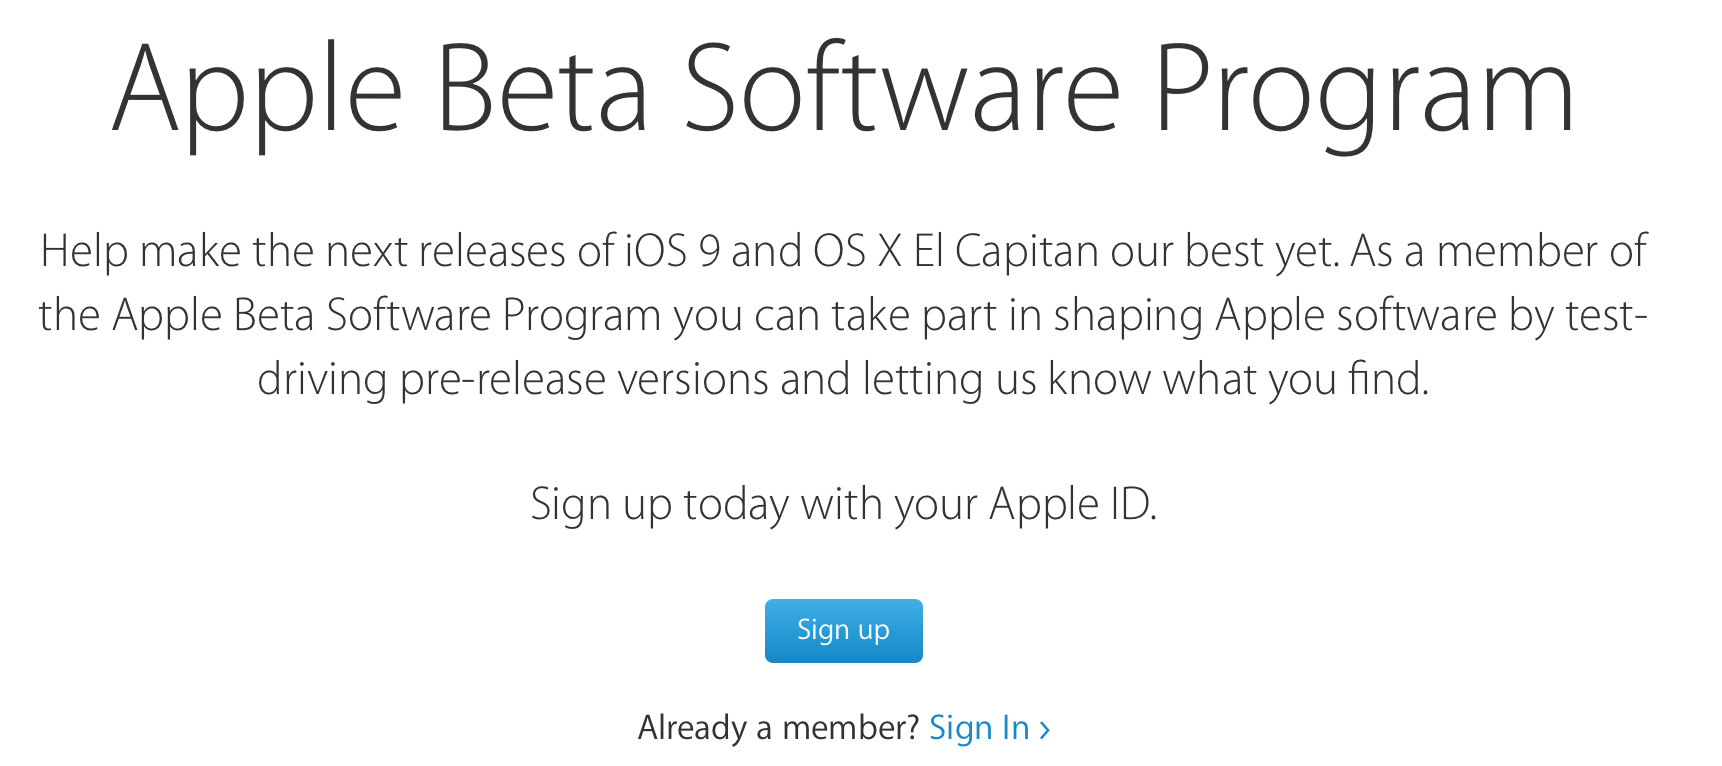 Now You Can Download iOS 9 and OS X El Capitan as Open Beta